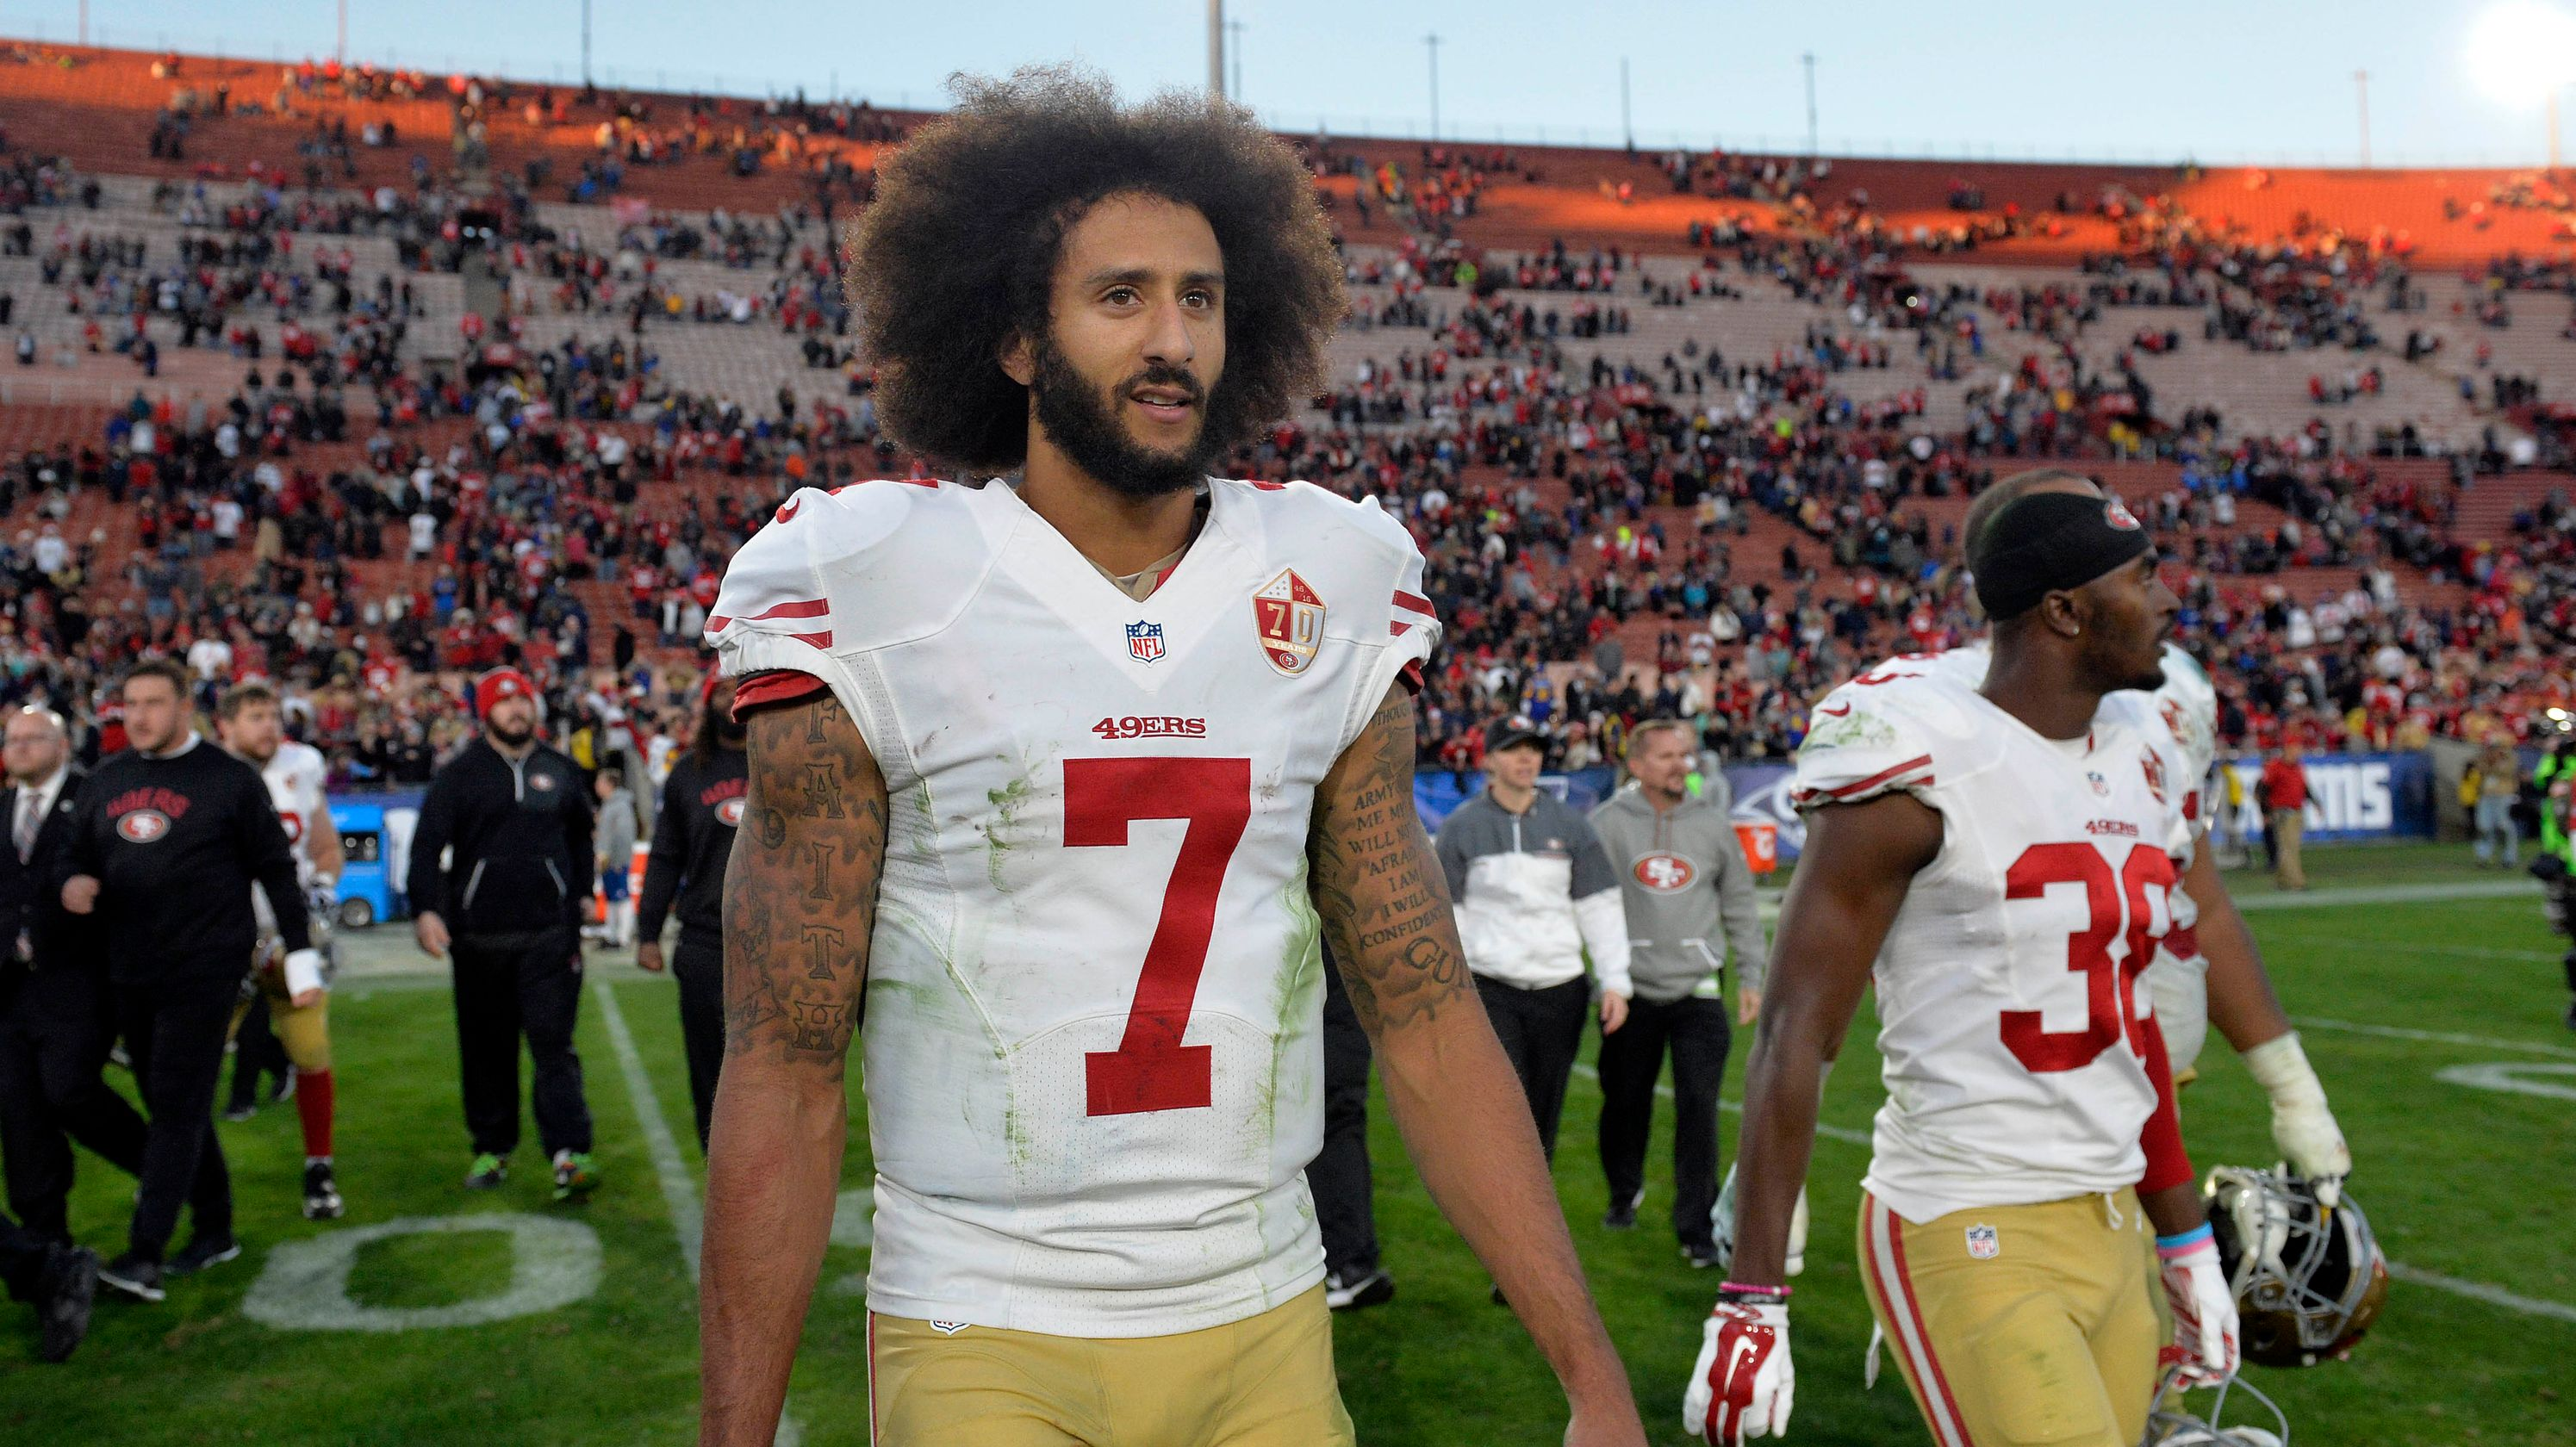 Redskins' Jay Gruden: Colin Kaepernick 'discussed,' but QB not right fit for team now